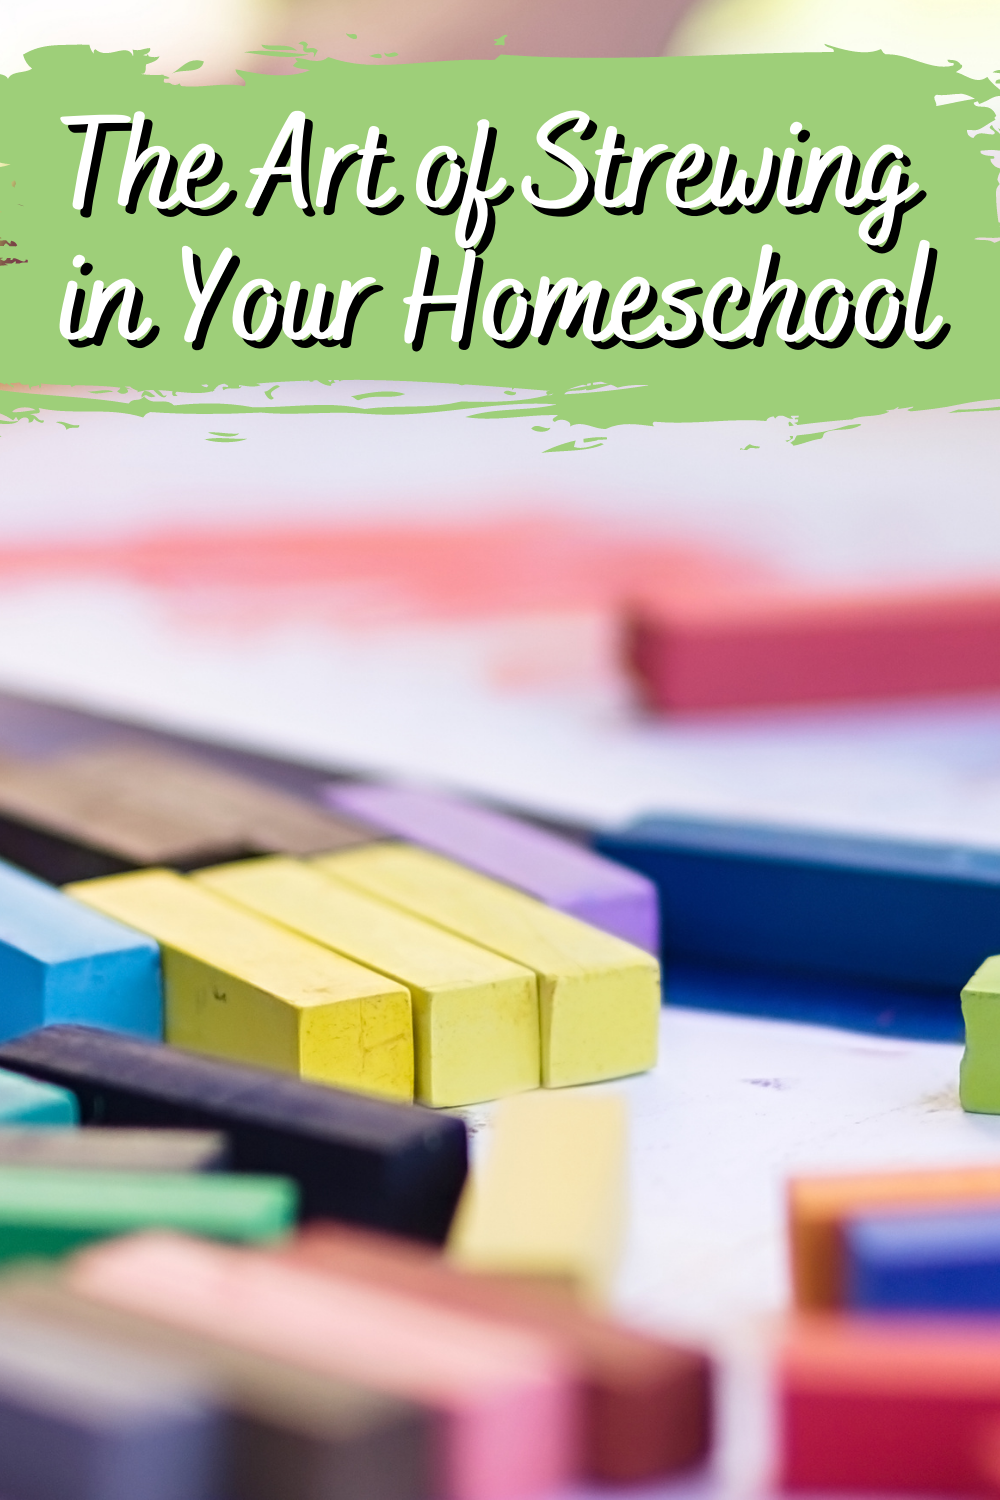 Strewing is definitely an art! It's all about carefully choosing special items and activities for your kids to explore. Strewing in your homeschool is a wonderful way to spark your children's creativity! Art lessons can be a fabulous resource to strew.